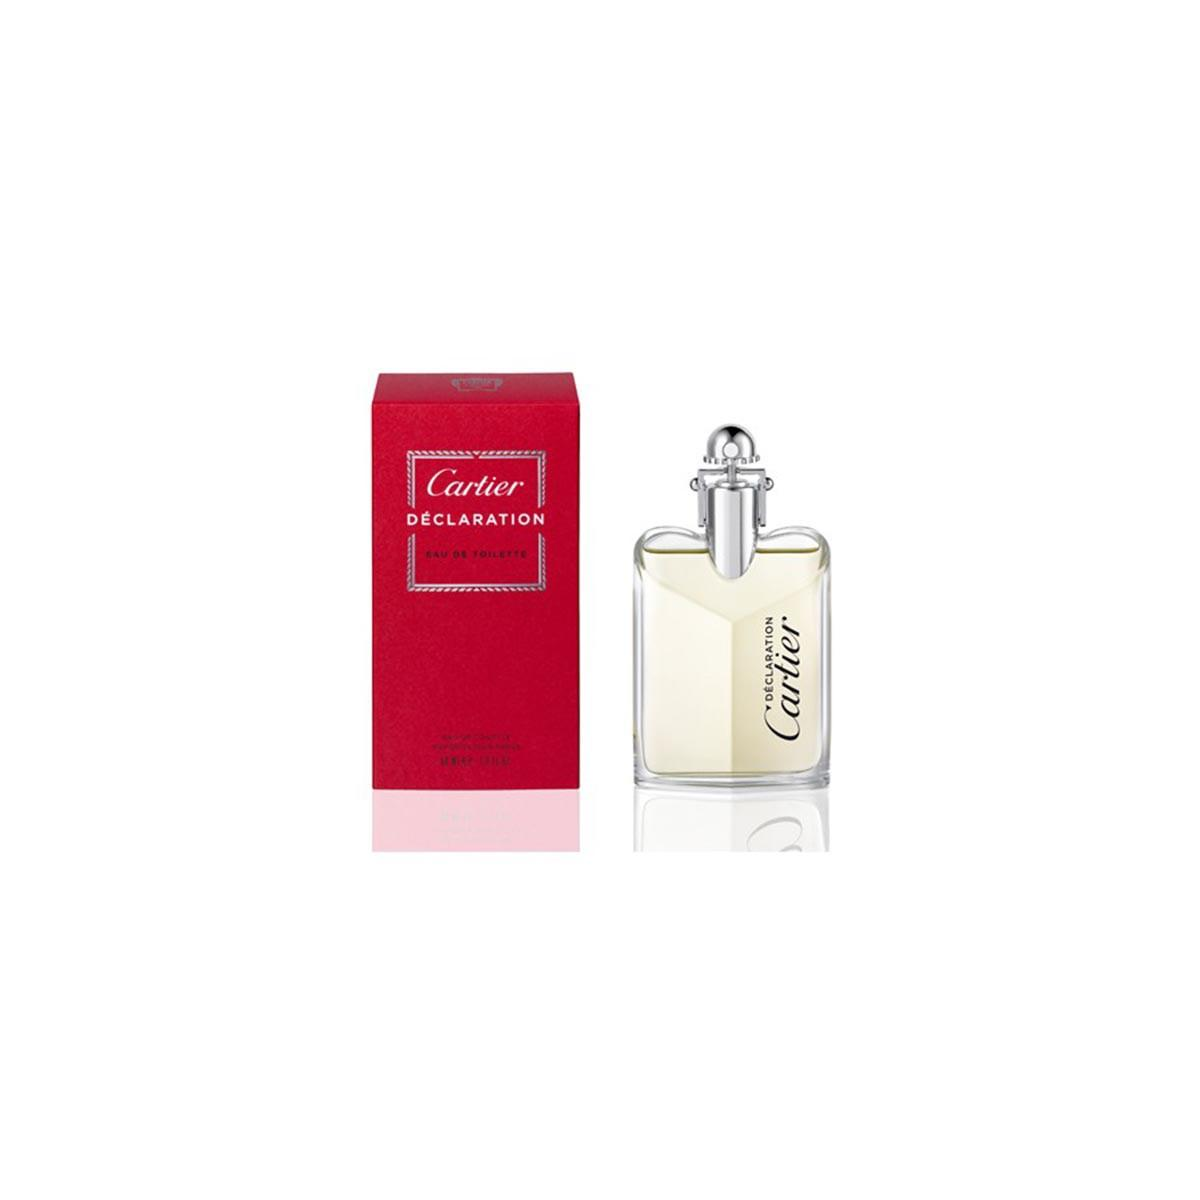 Cartier fragrances Miniatura Declaration Eau De Toilette 4ml